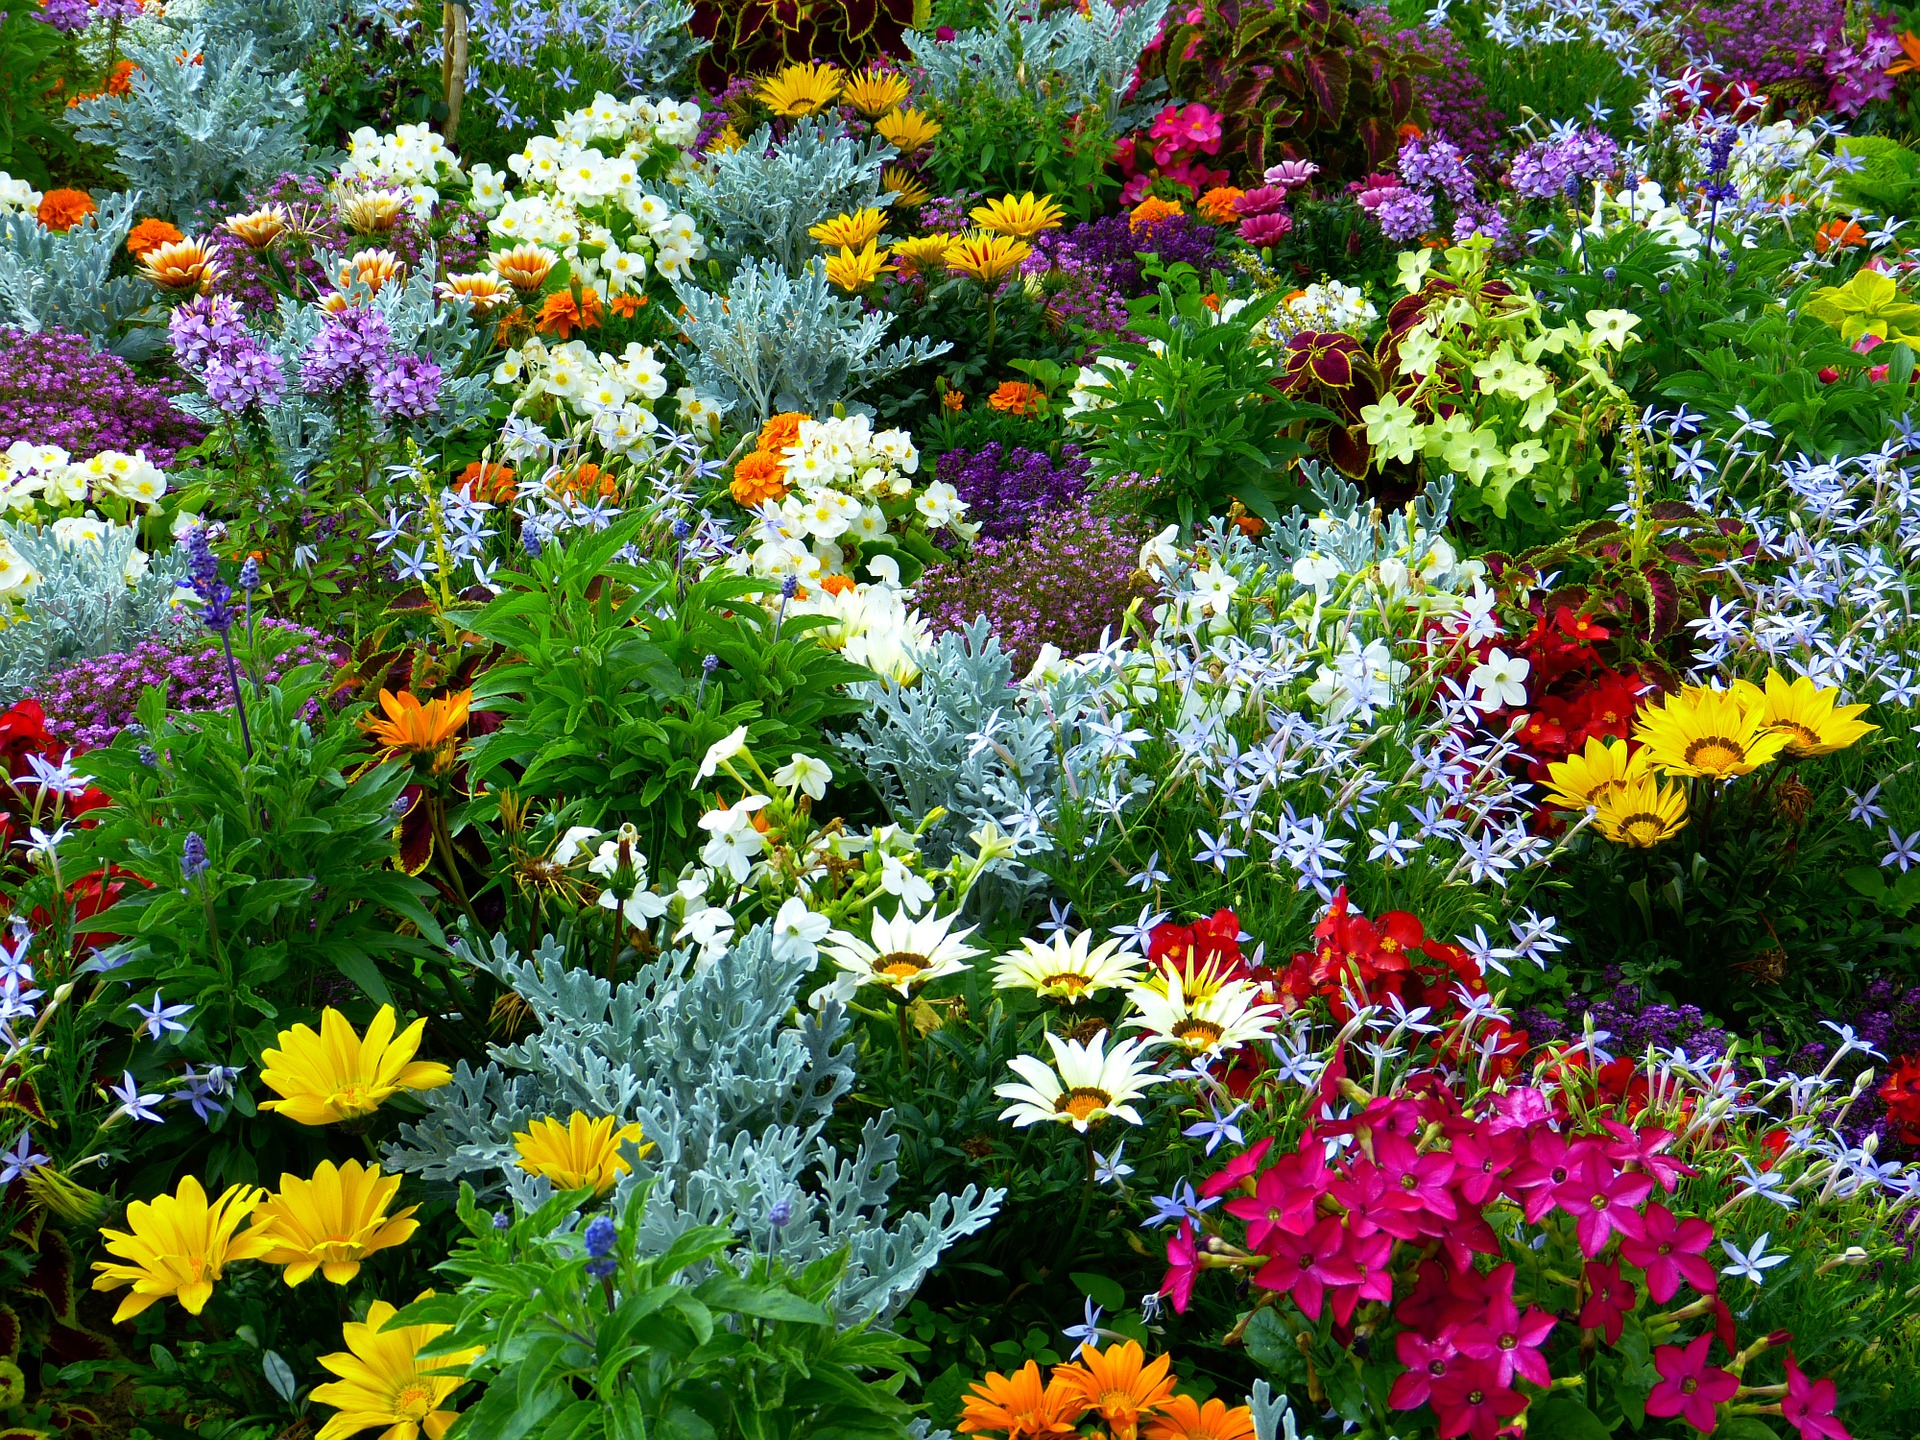 Plant your own aromatherapy garden the dreaming earth botanicals blog - Aromatic herbs pots multiple benefits ...